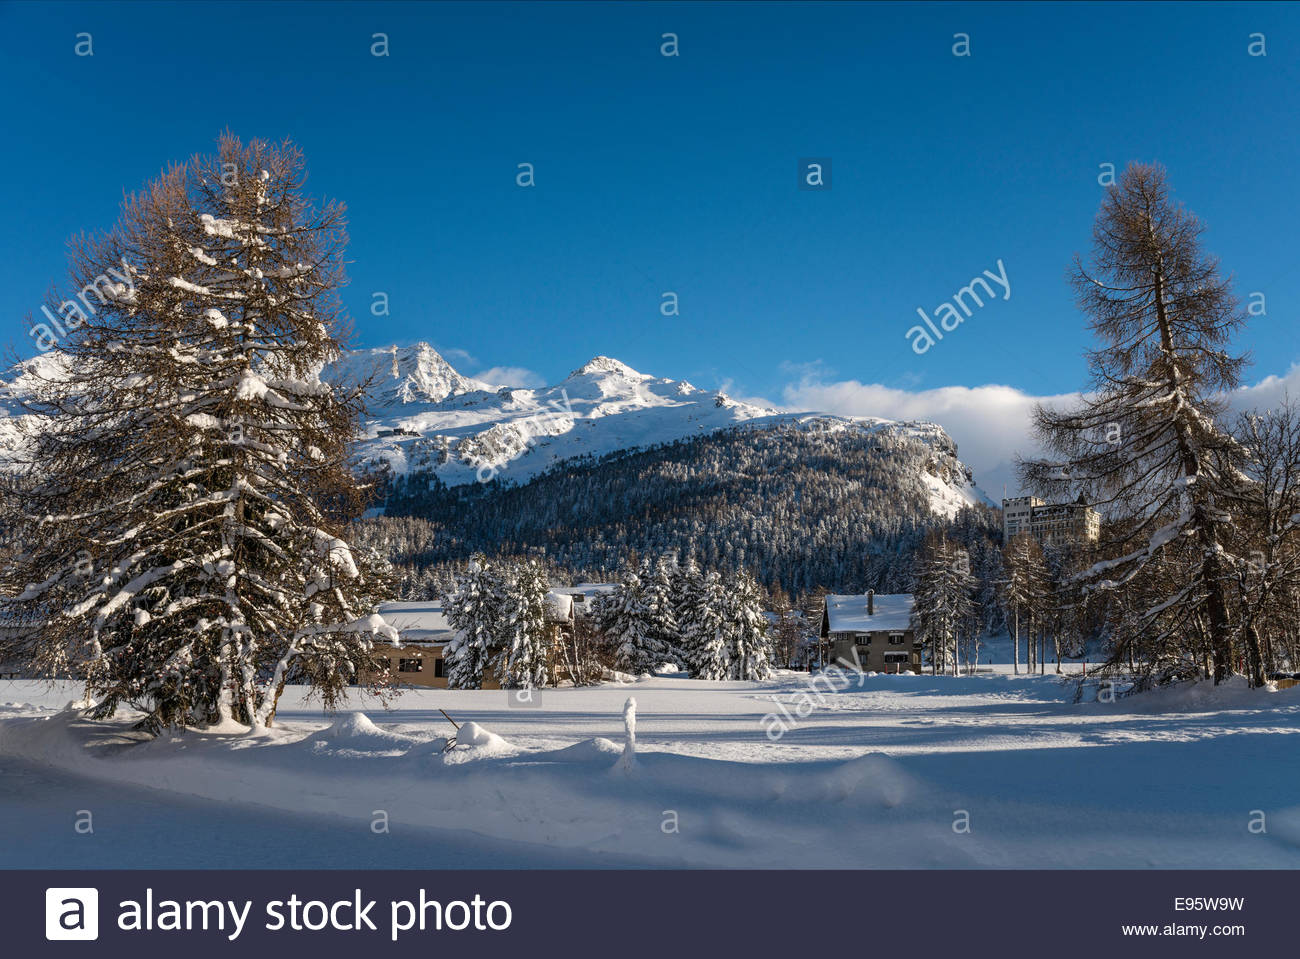 Switzerland, Engadine, Sils-Maria, Winter landscape | Schweiz, Oberengadin, Sils-Maria Winterlandschaft Stock Photo